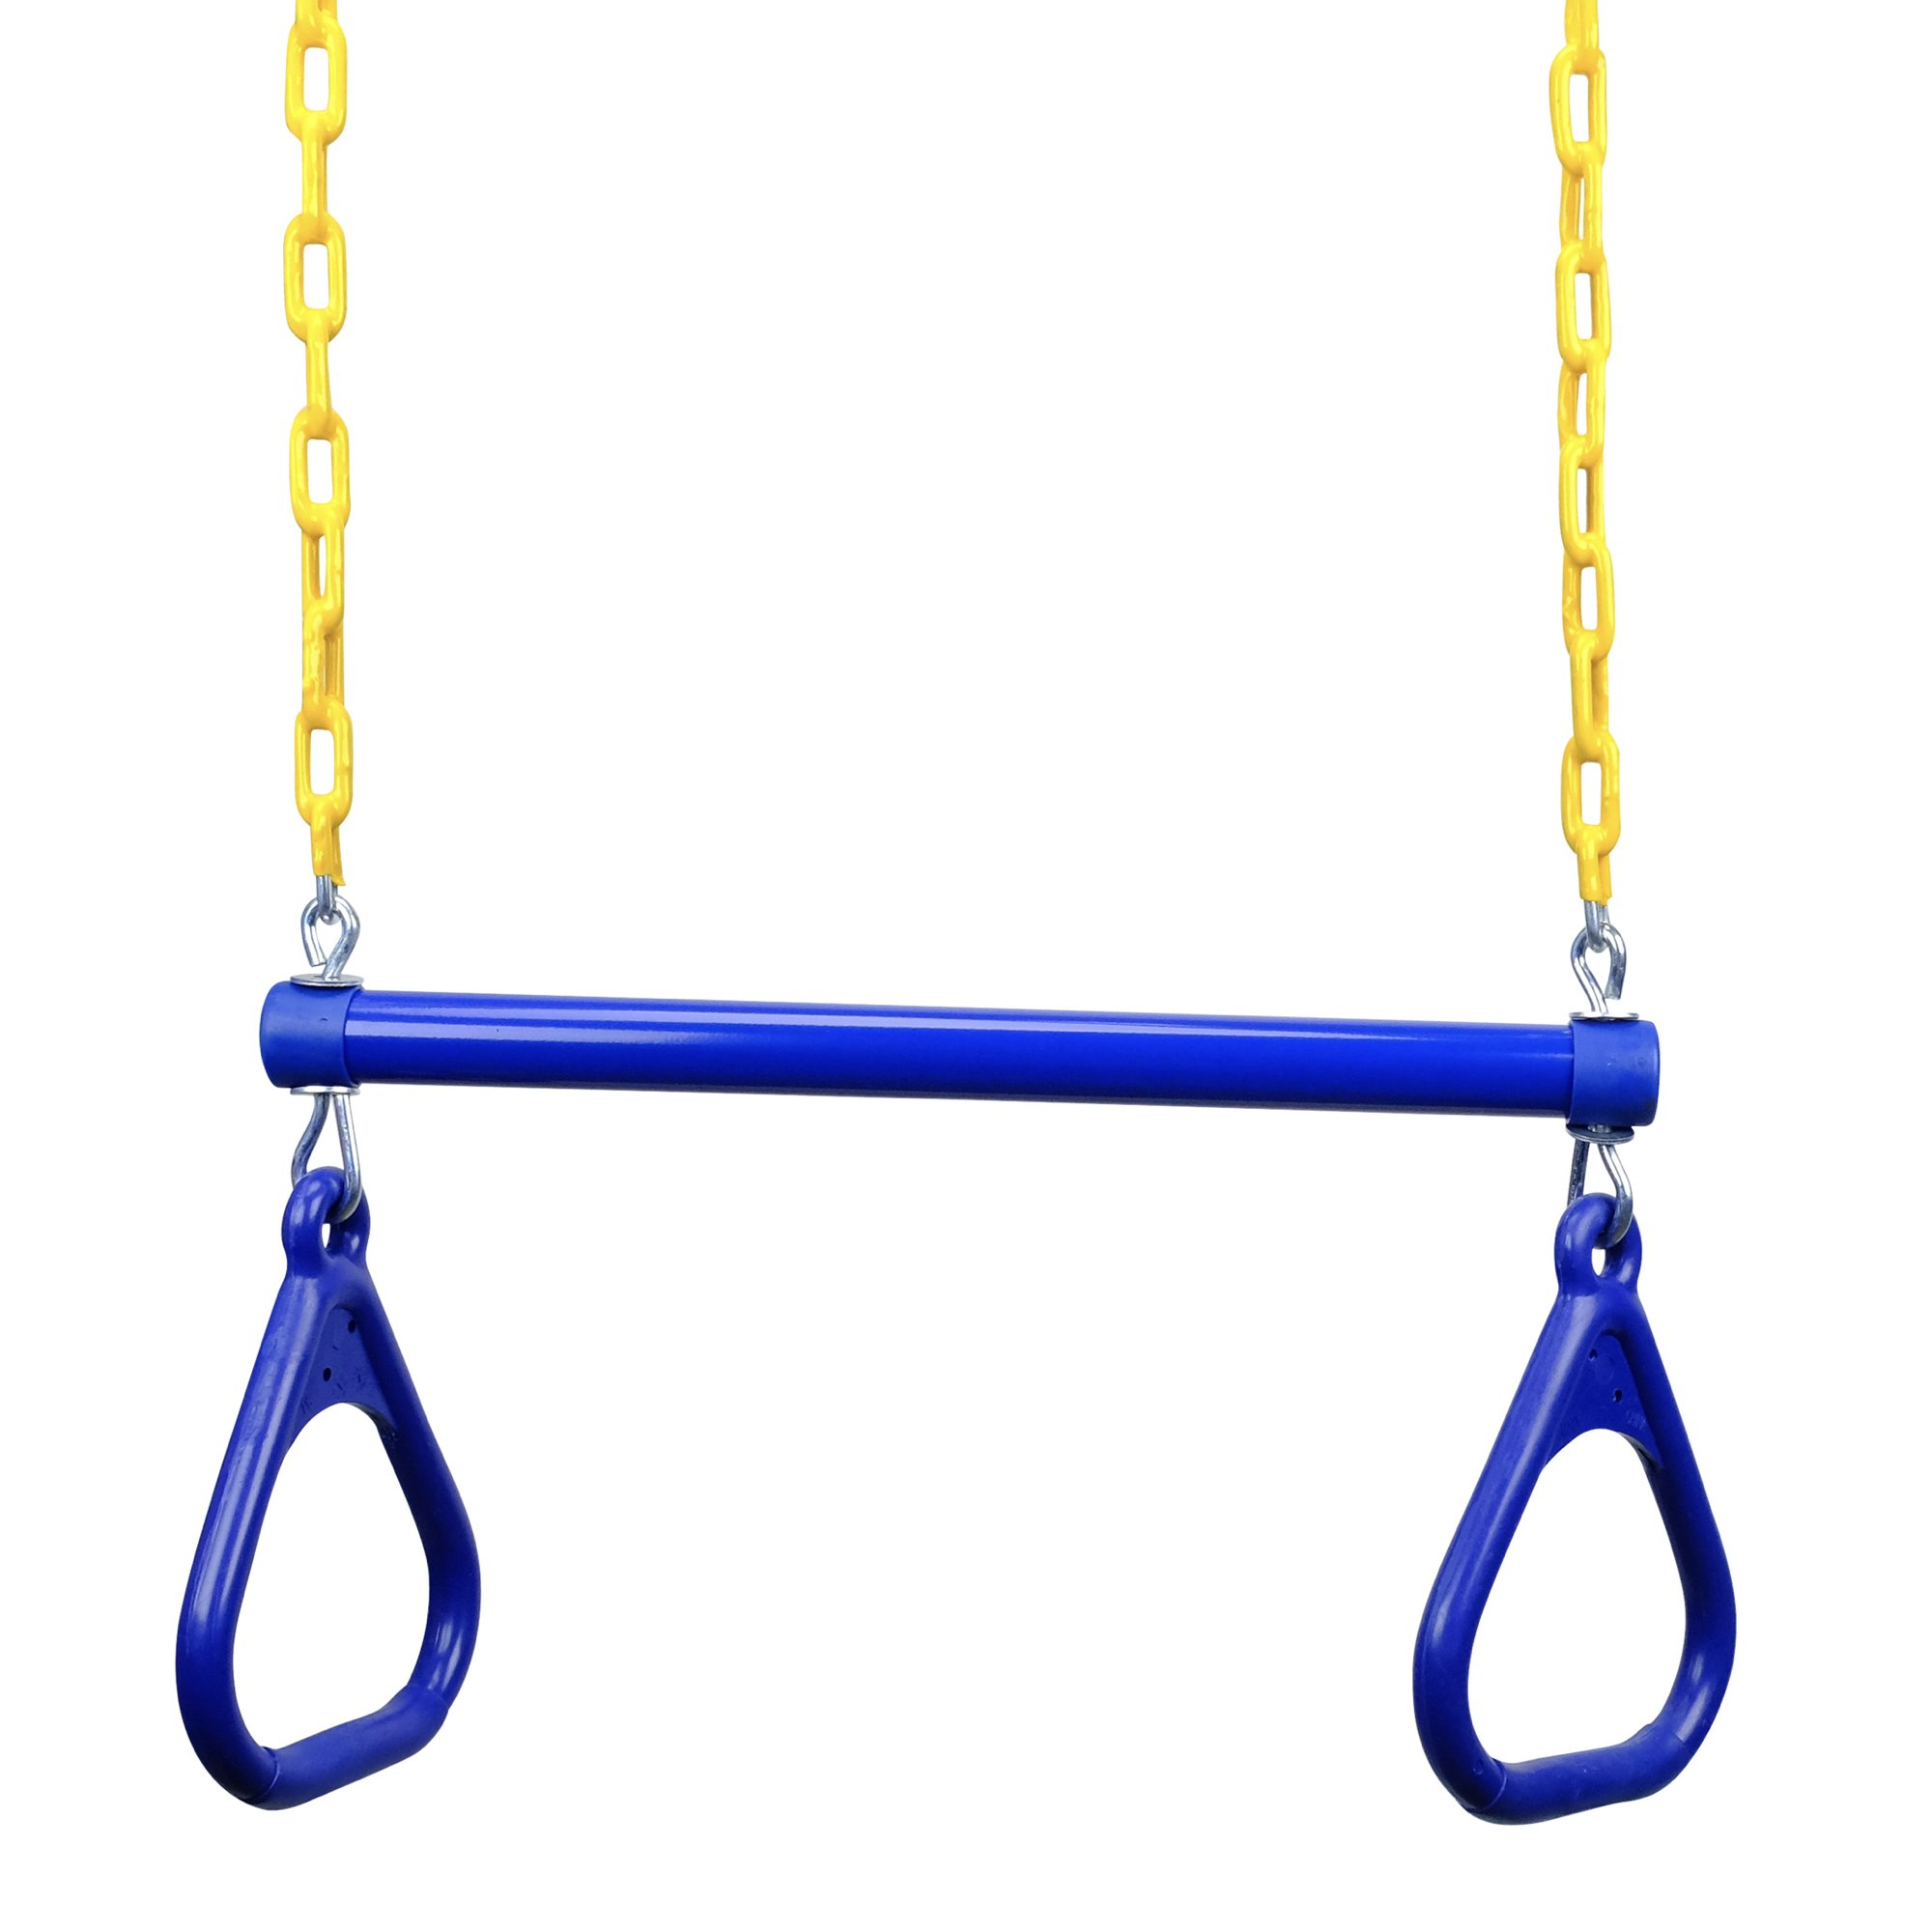 JGS 18'' Heavy Duty Trapeze Swing Bar Combo with Rings and Extra Long 43'' Coated Chain - Great for Outdoor Play, Backyard Swing Set, Jungle Gym (Blue) by Jungle George Swings